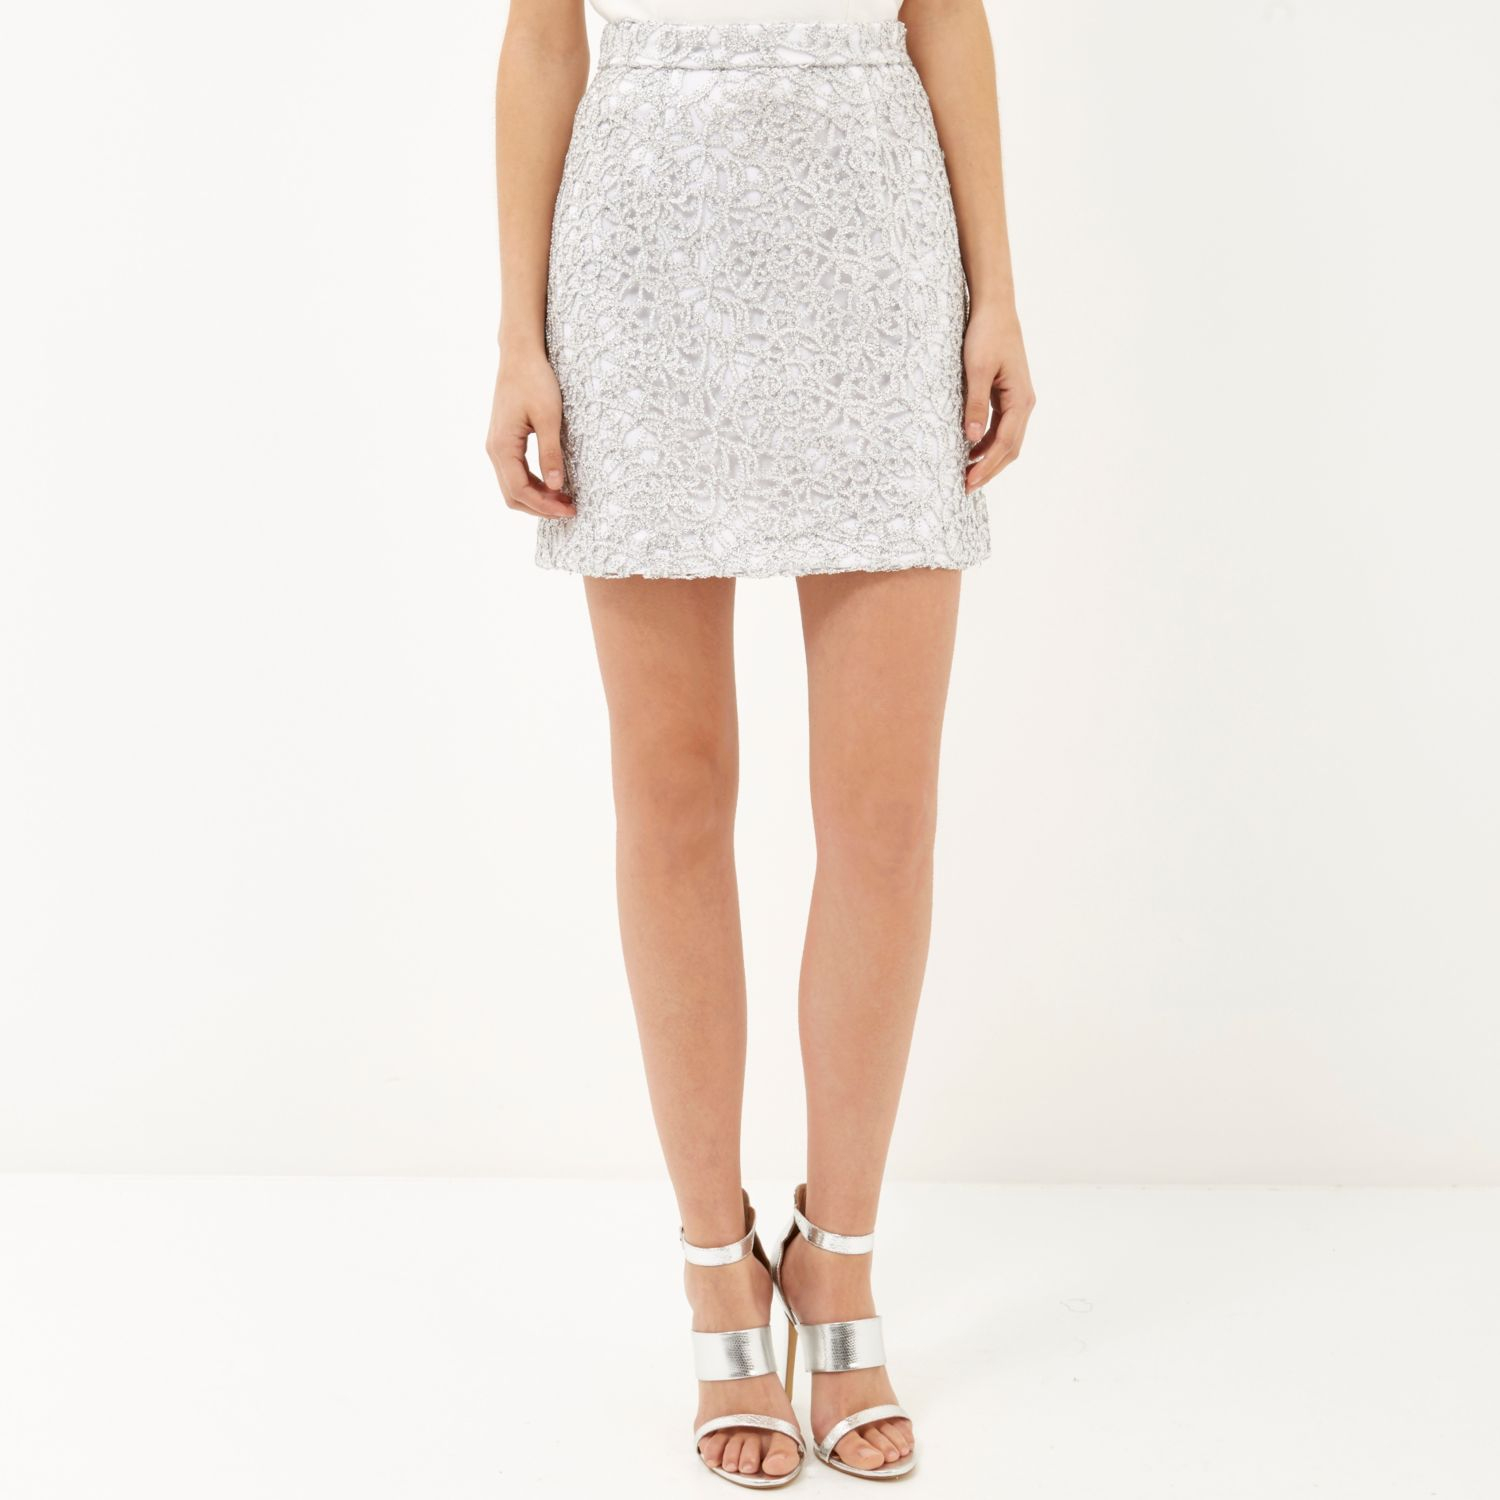 River island Silver Sparkly Lace A-line Skirt in Gray | Lyst